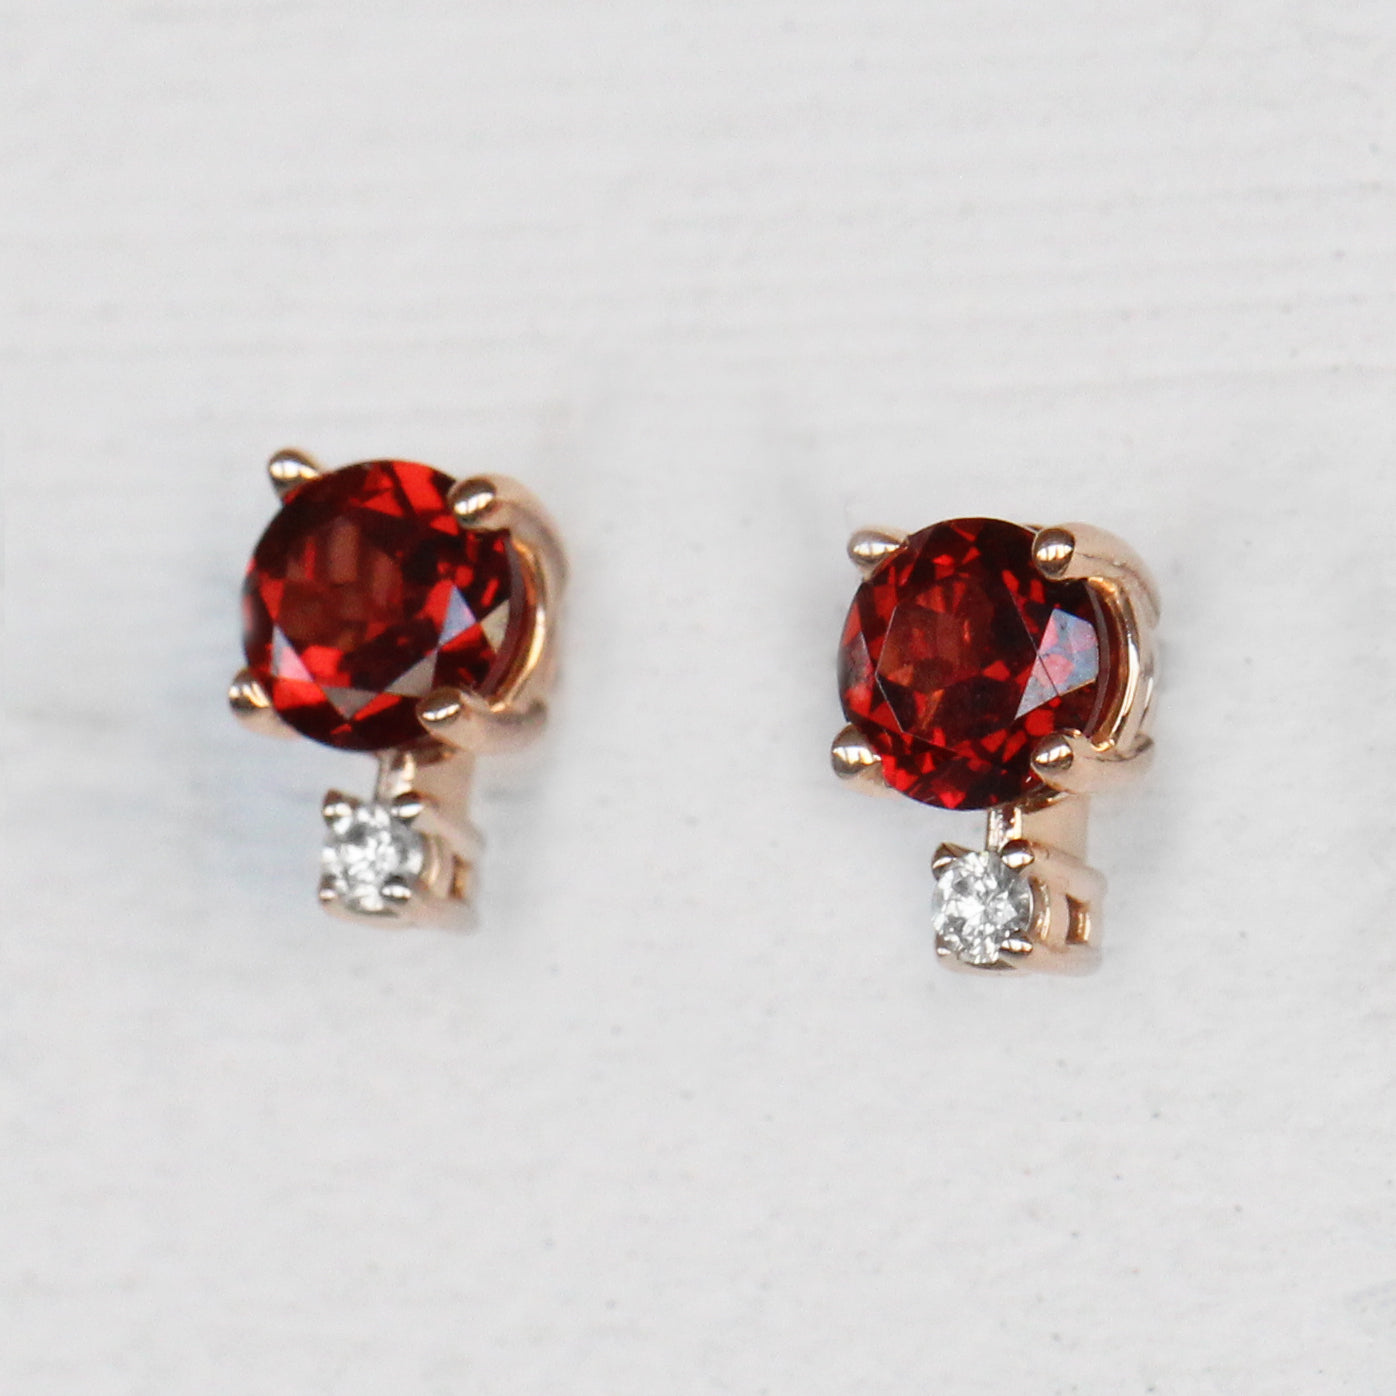 Joanna Earring with Garnet and Diamond Accent - 14k Gold of Your Choice - Made to Order - Salt & Pepper Celestial Diamond Engagement Rings and Wedding Bands  by Midwinter Co.